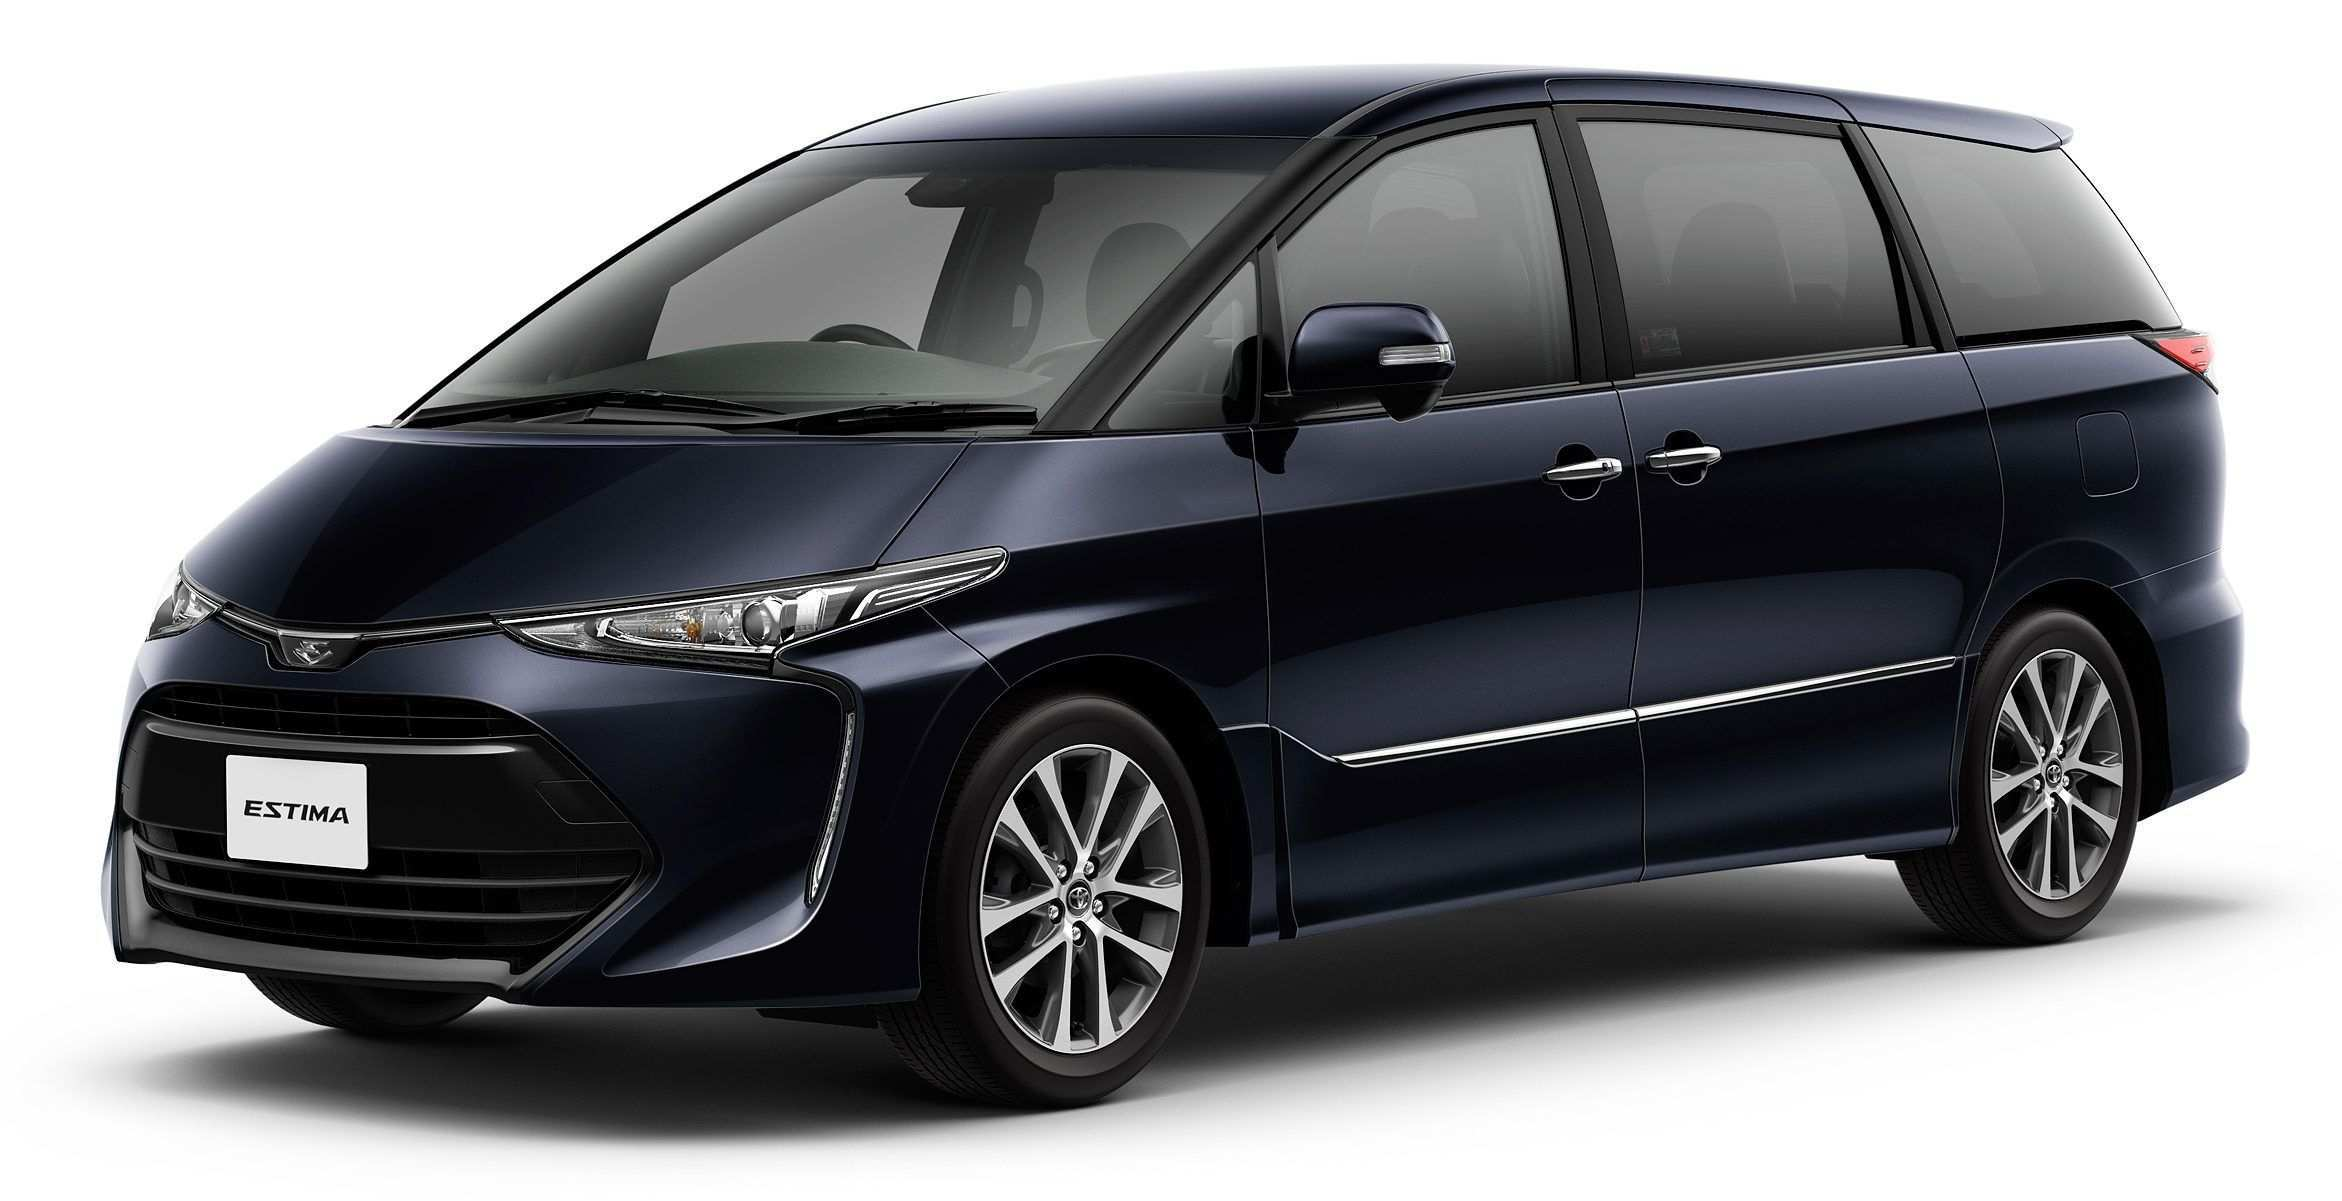 22 Great Toyota Estima 2020 Prices for Toyota Estima 2020